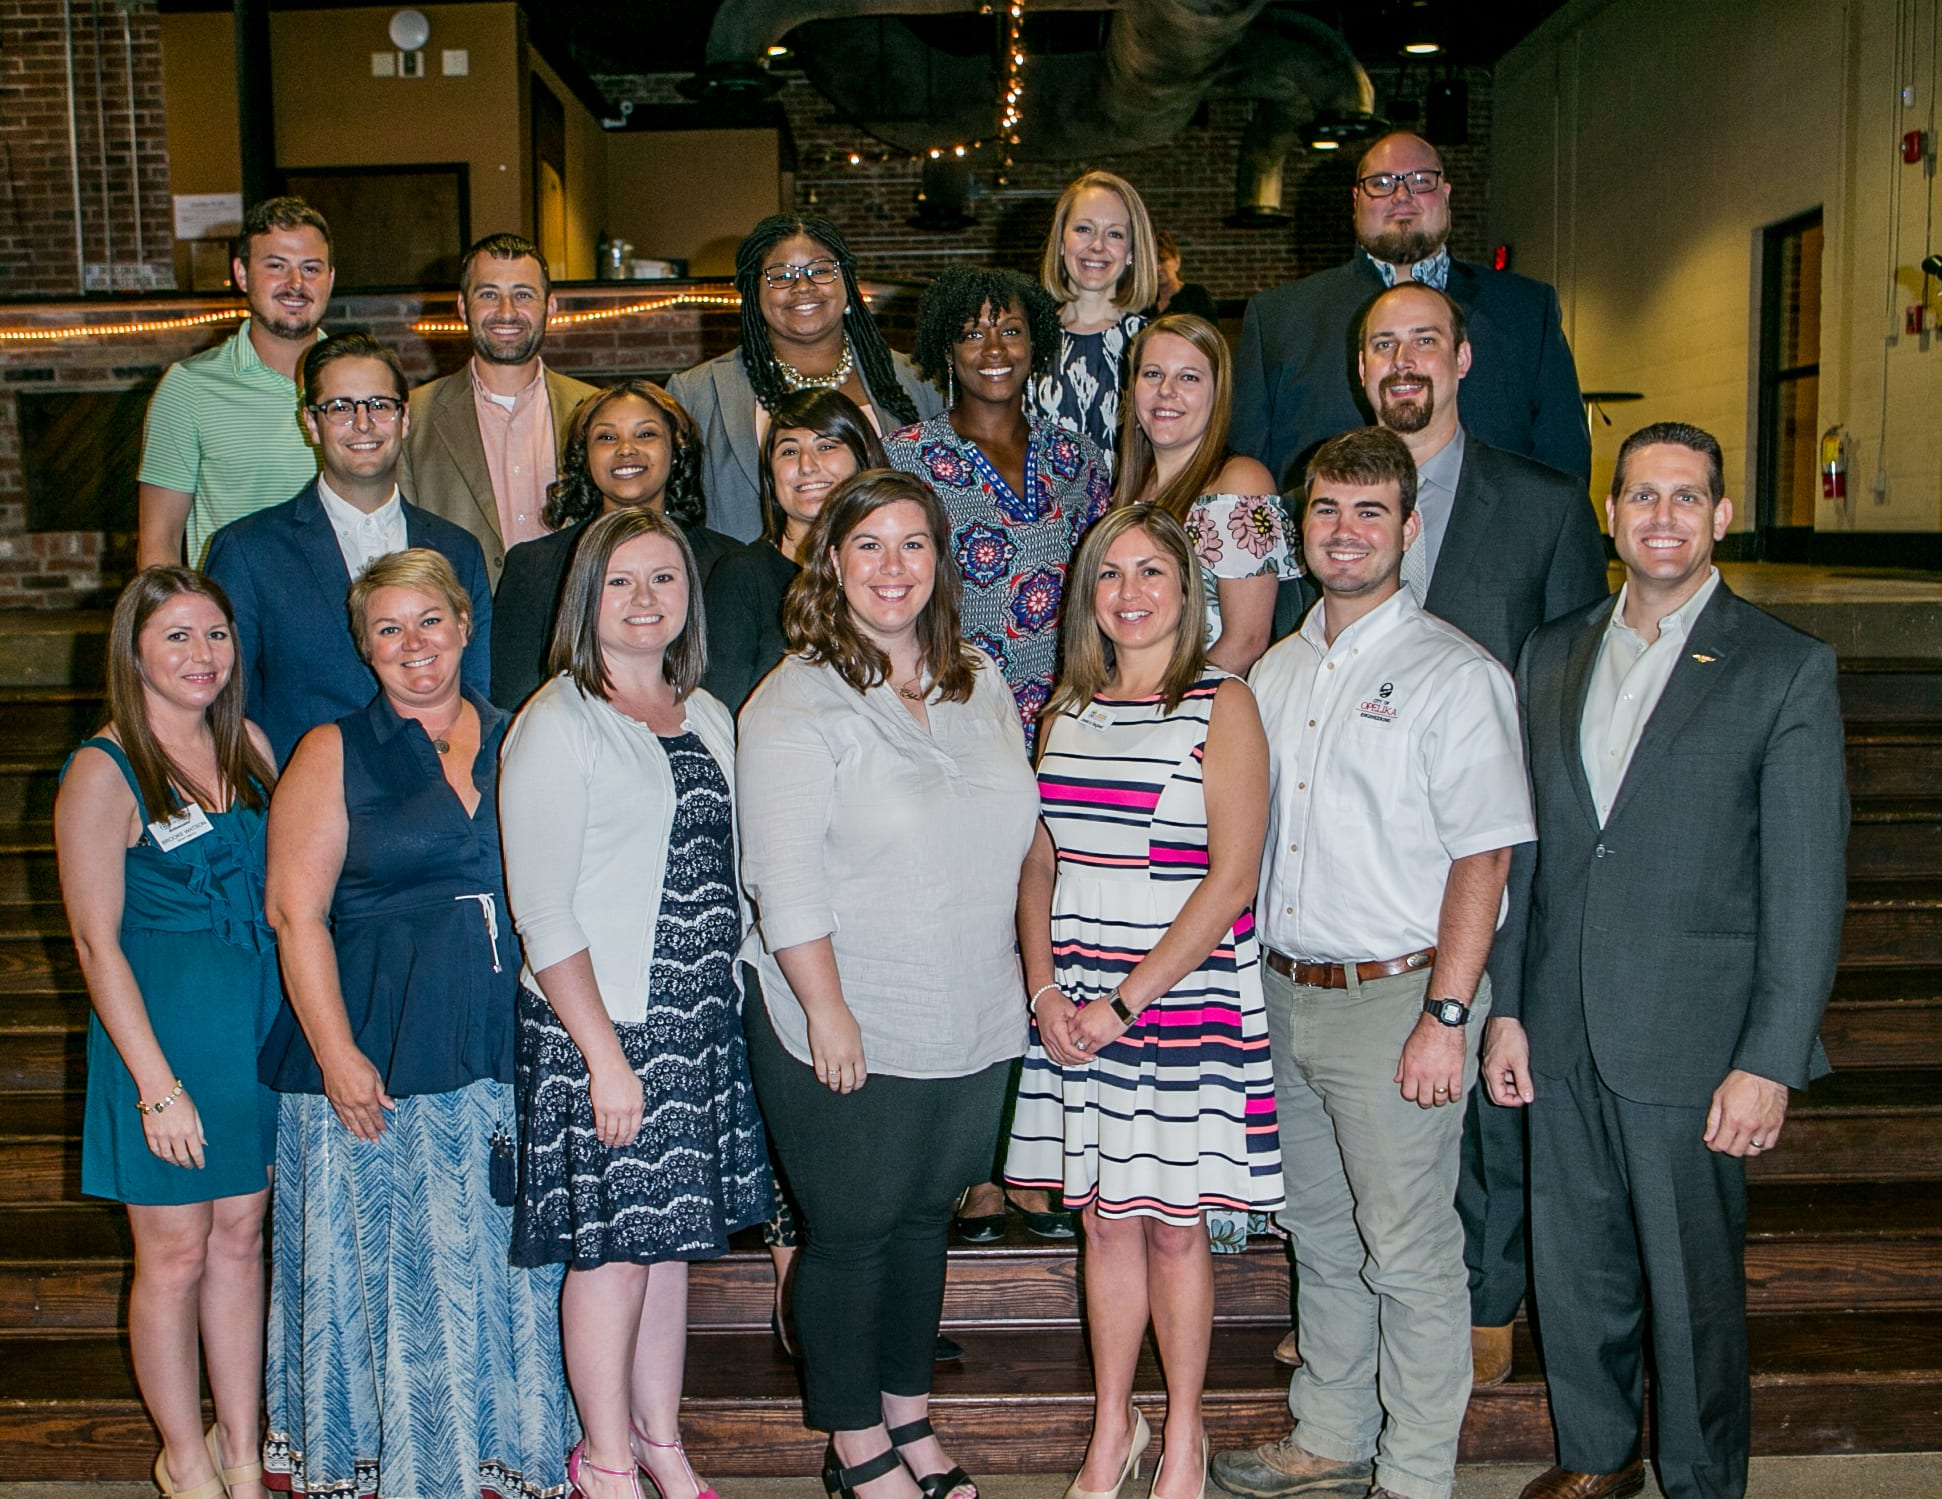 20 Under 40 Class of 2018-2019